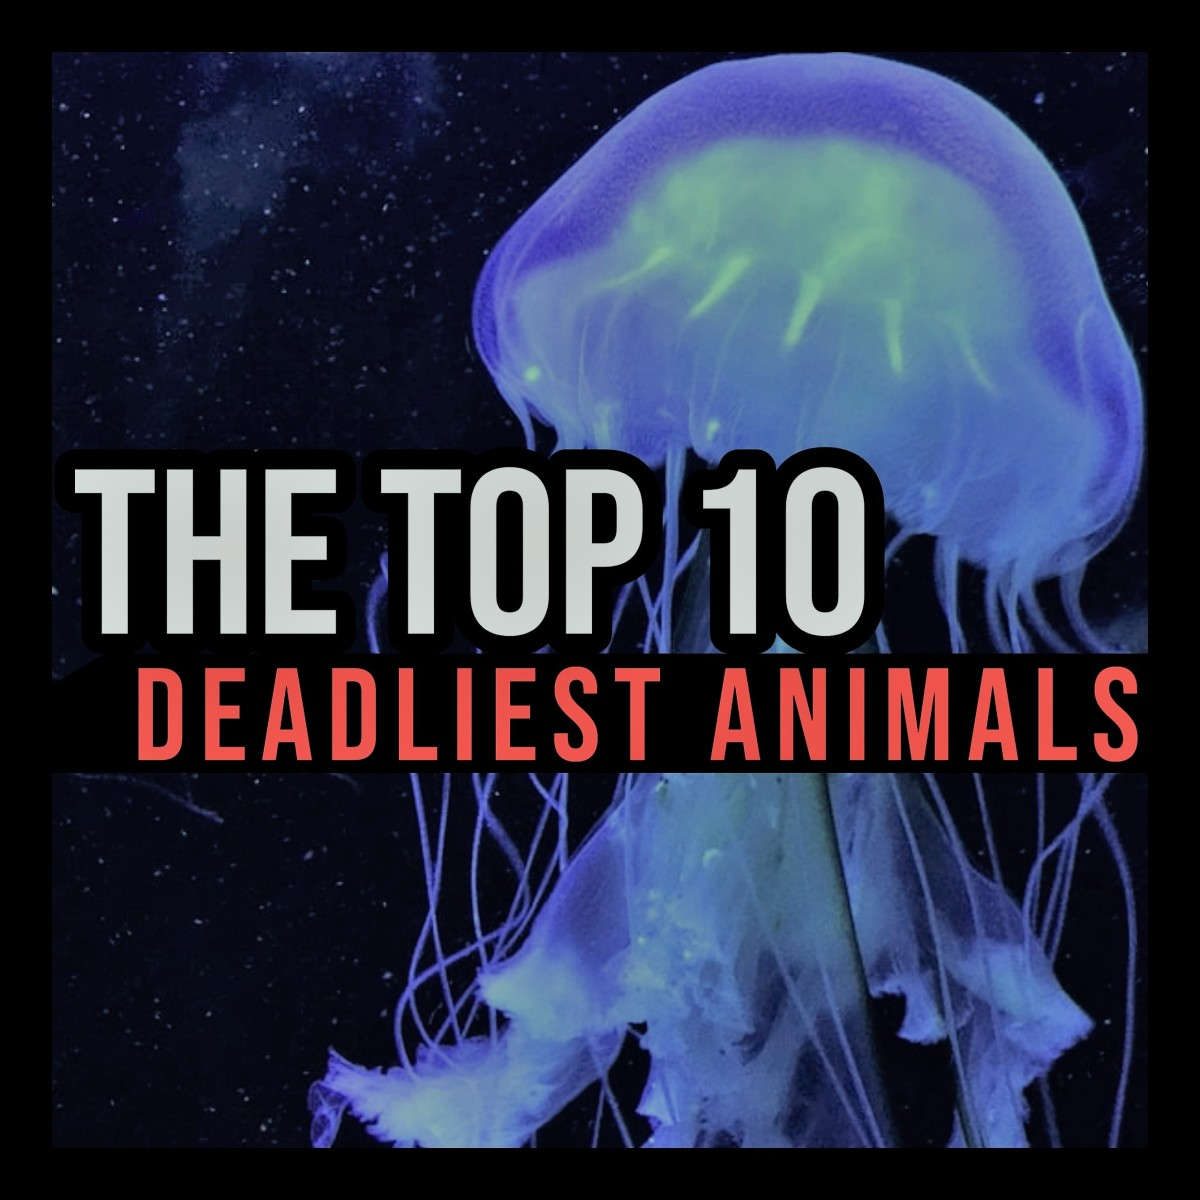 From the deathstalker scorpion to the marbled cone snail, this article ranks the world's deadliest (and most dangerous) animals.